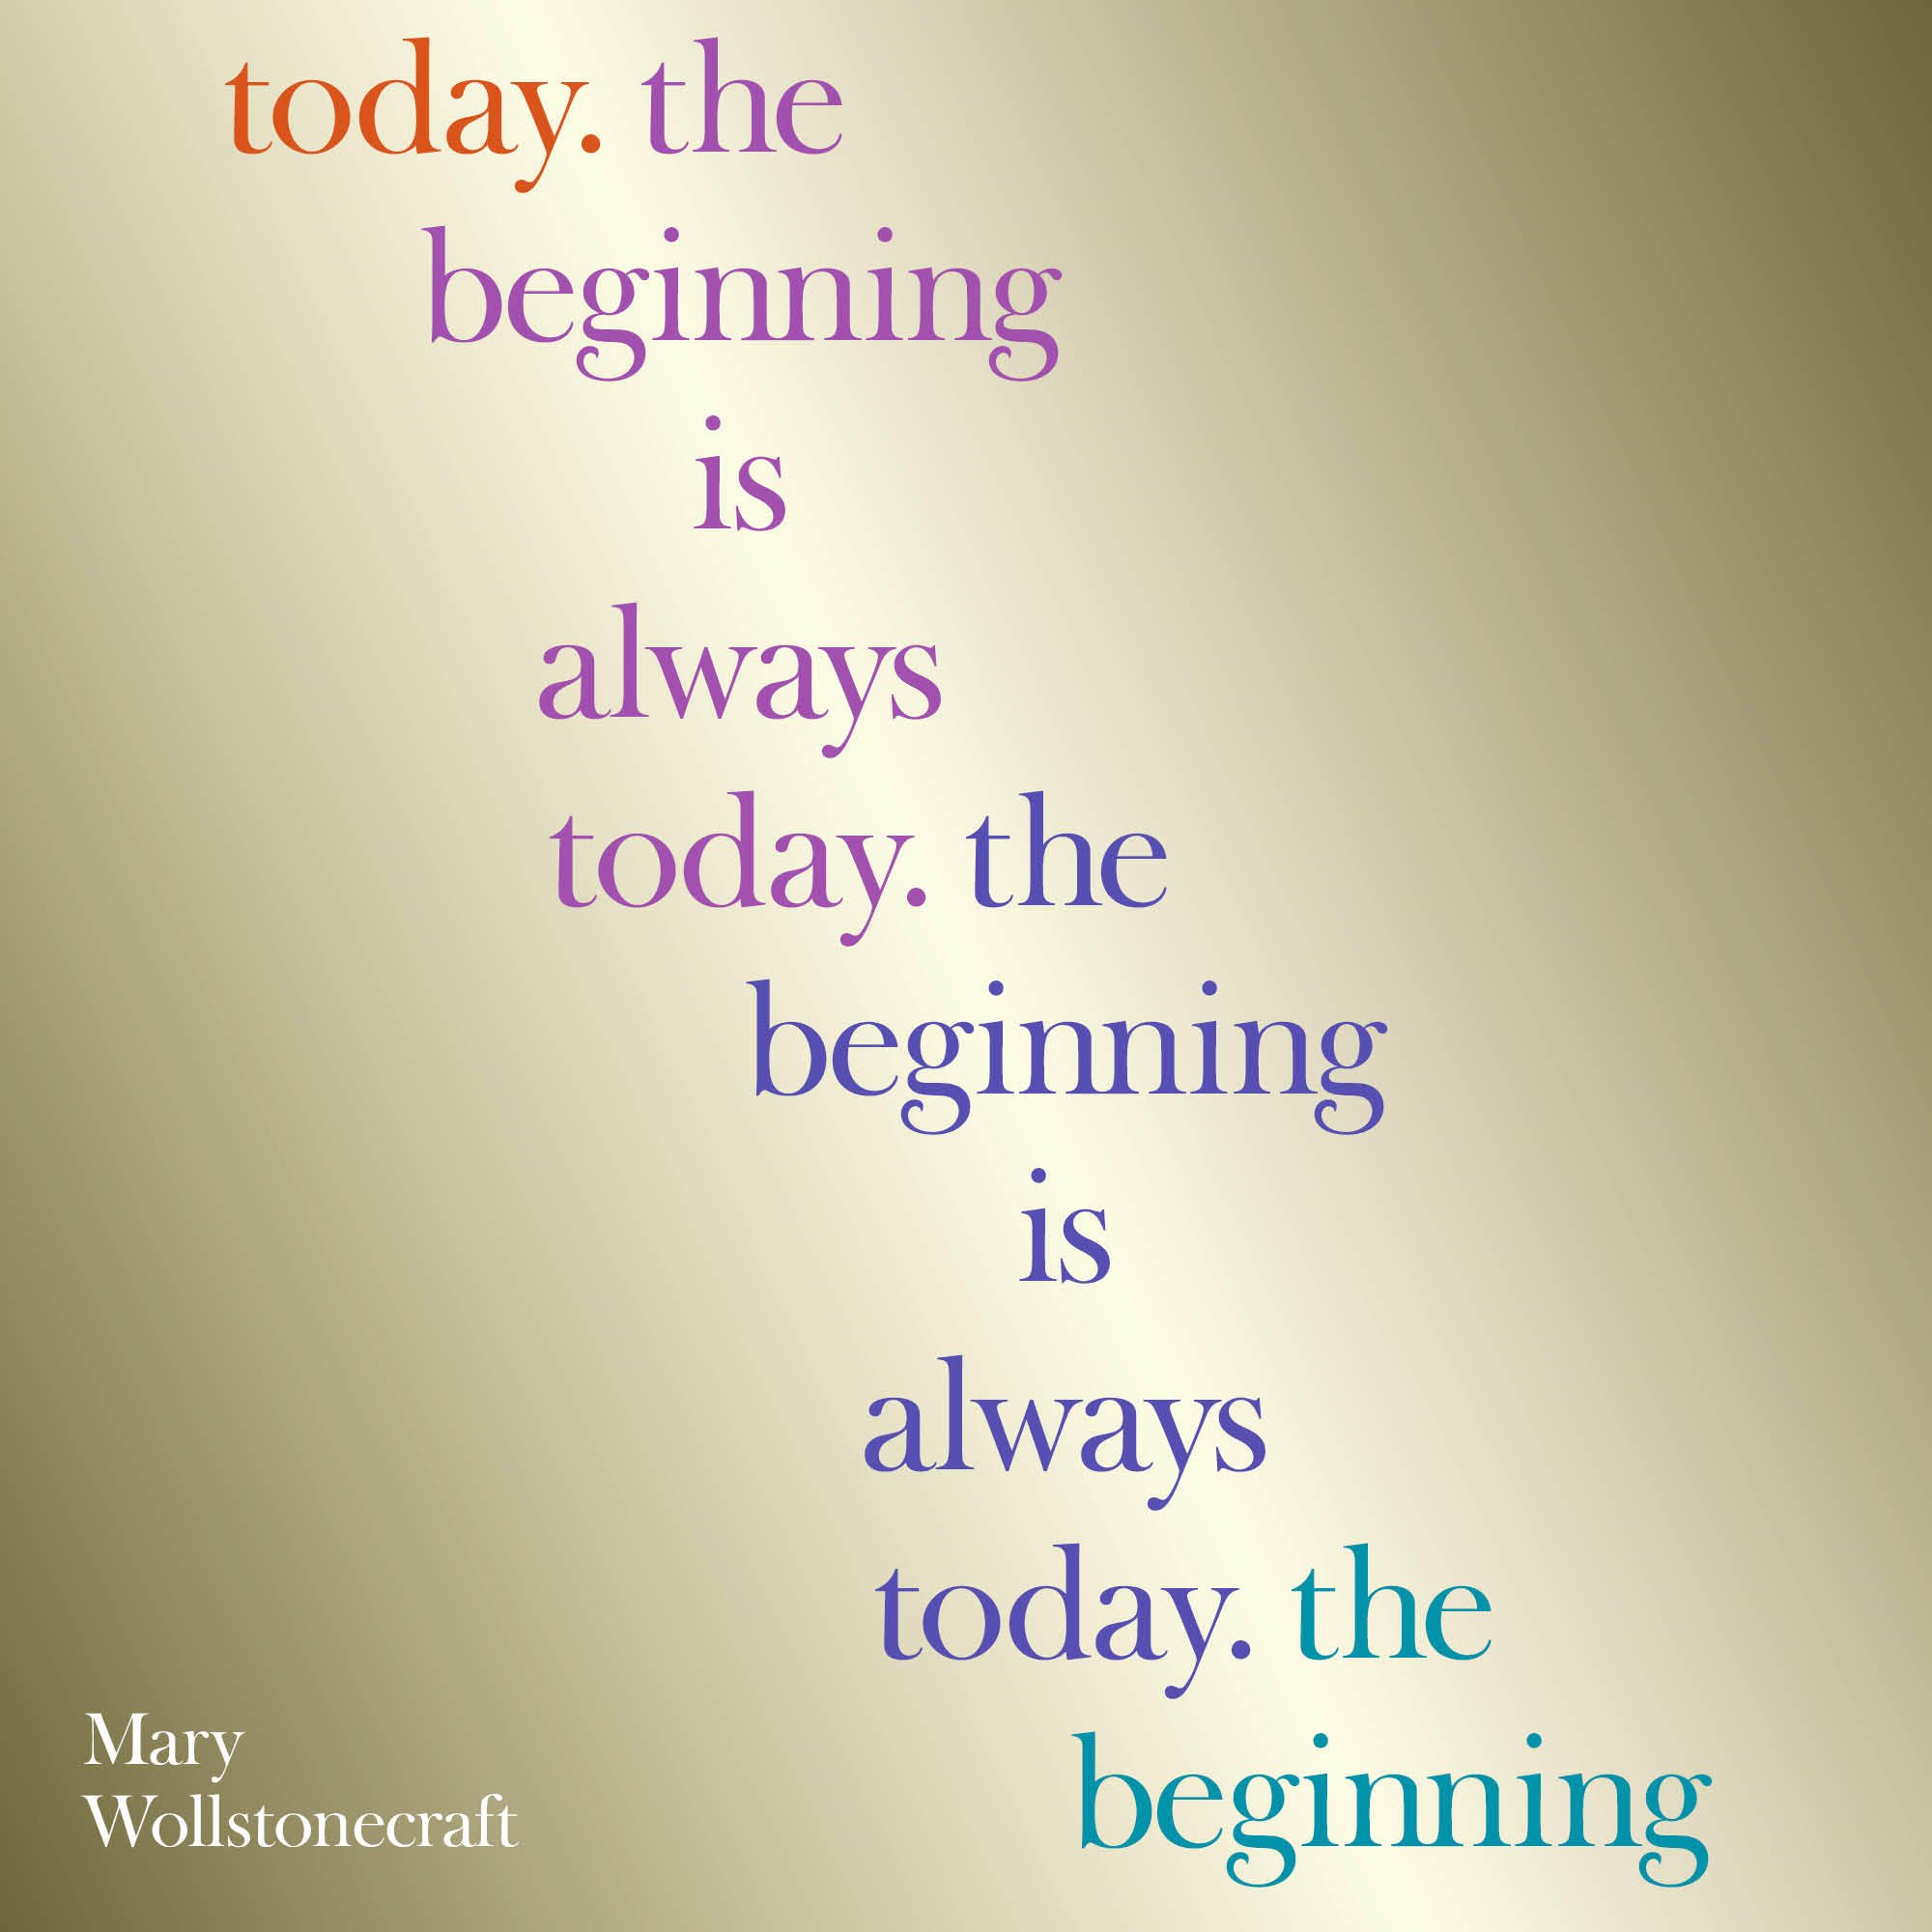 Today. The beginning is always today. The beginning is always today.  The beginning.